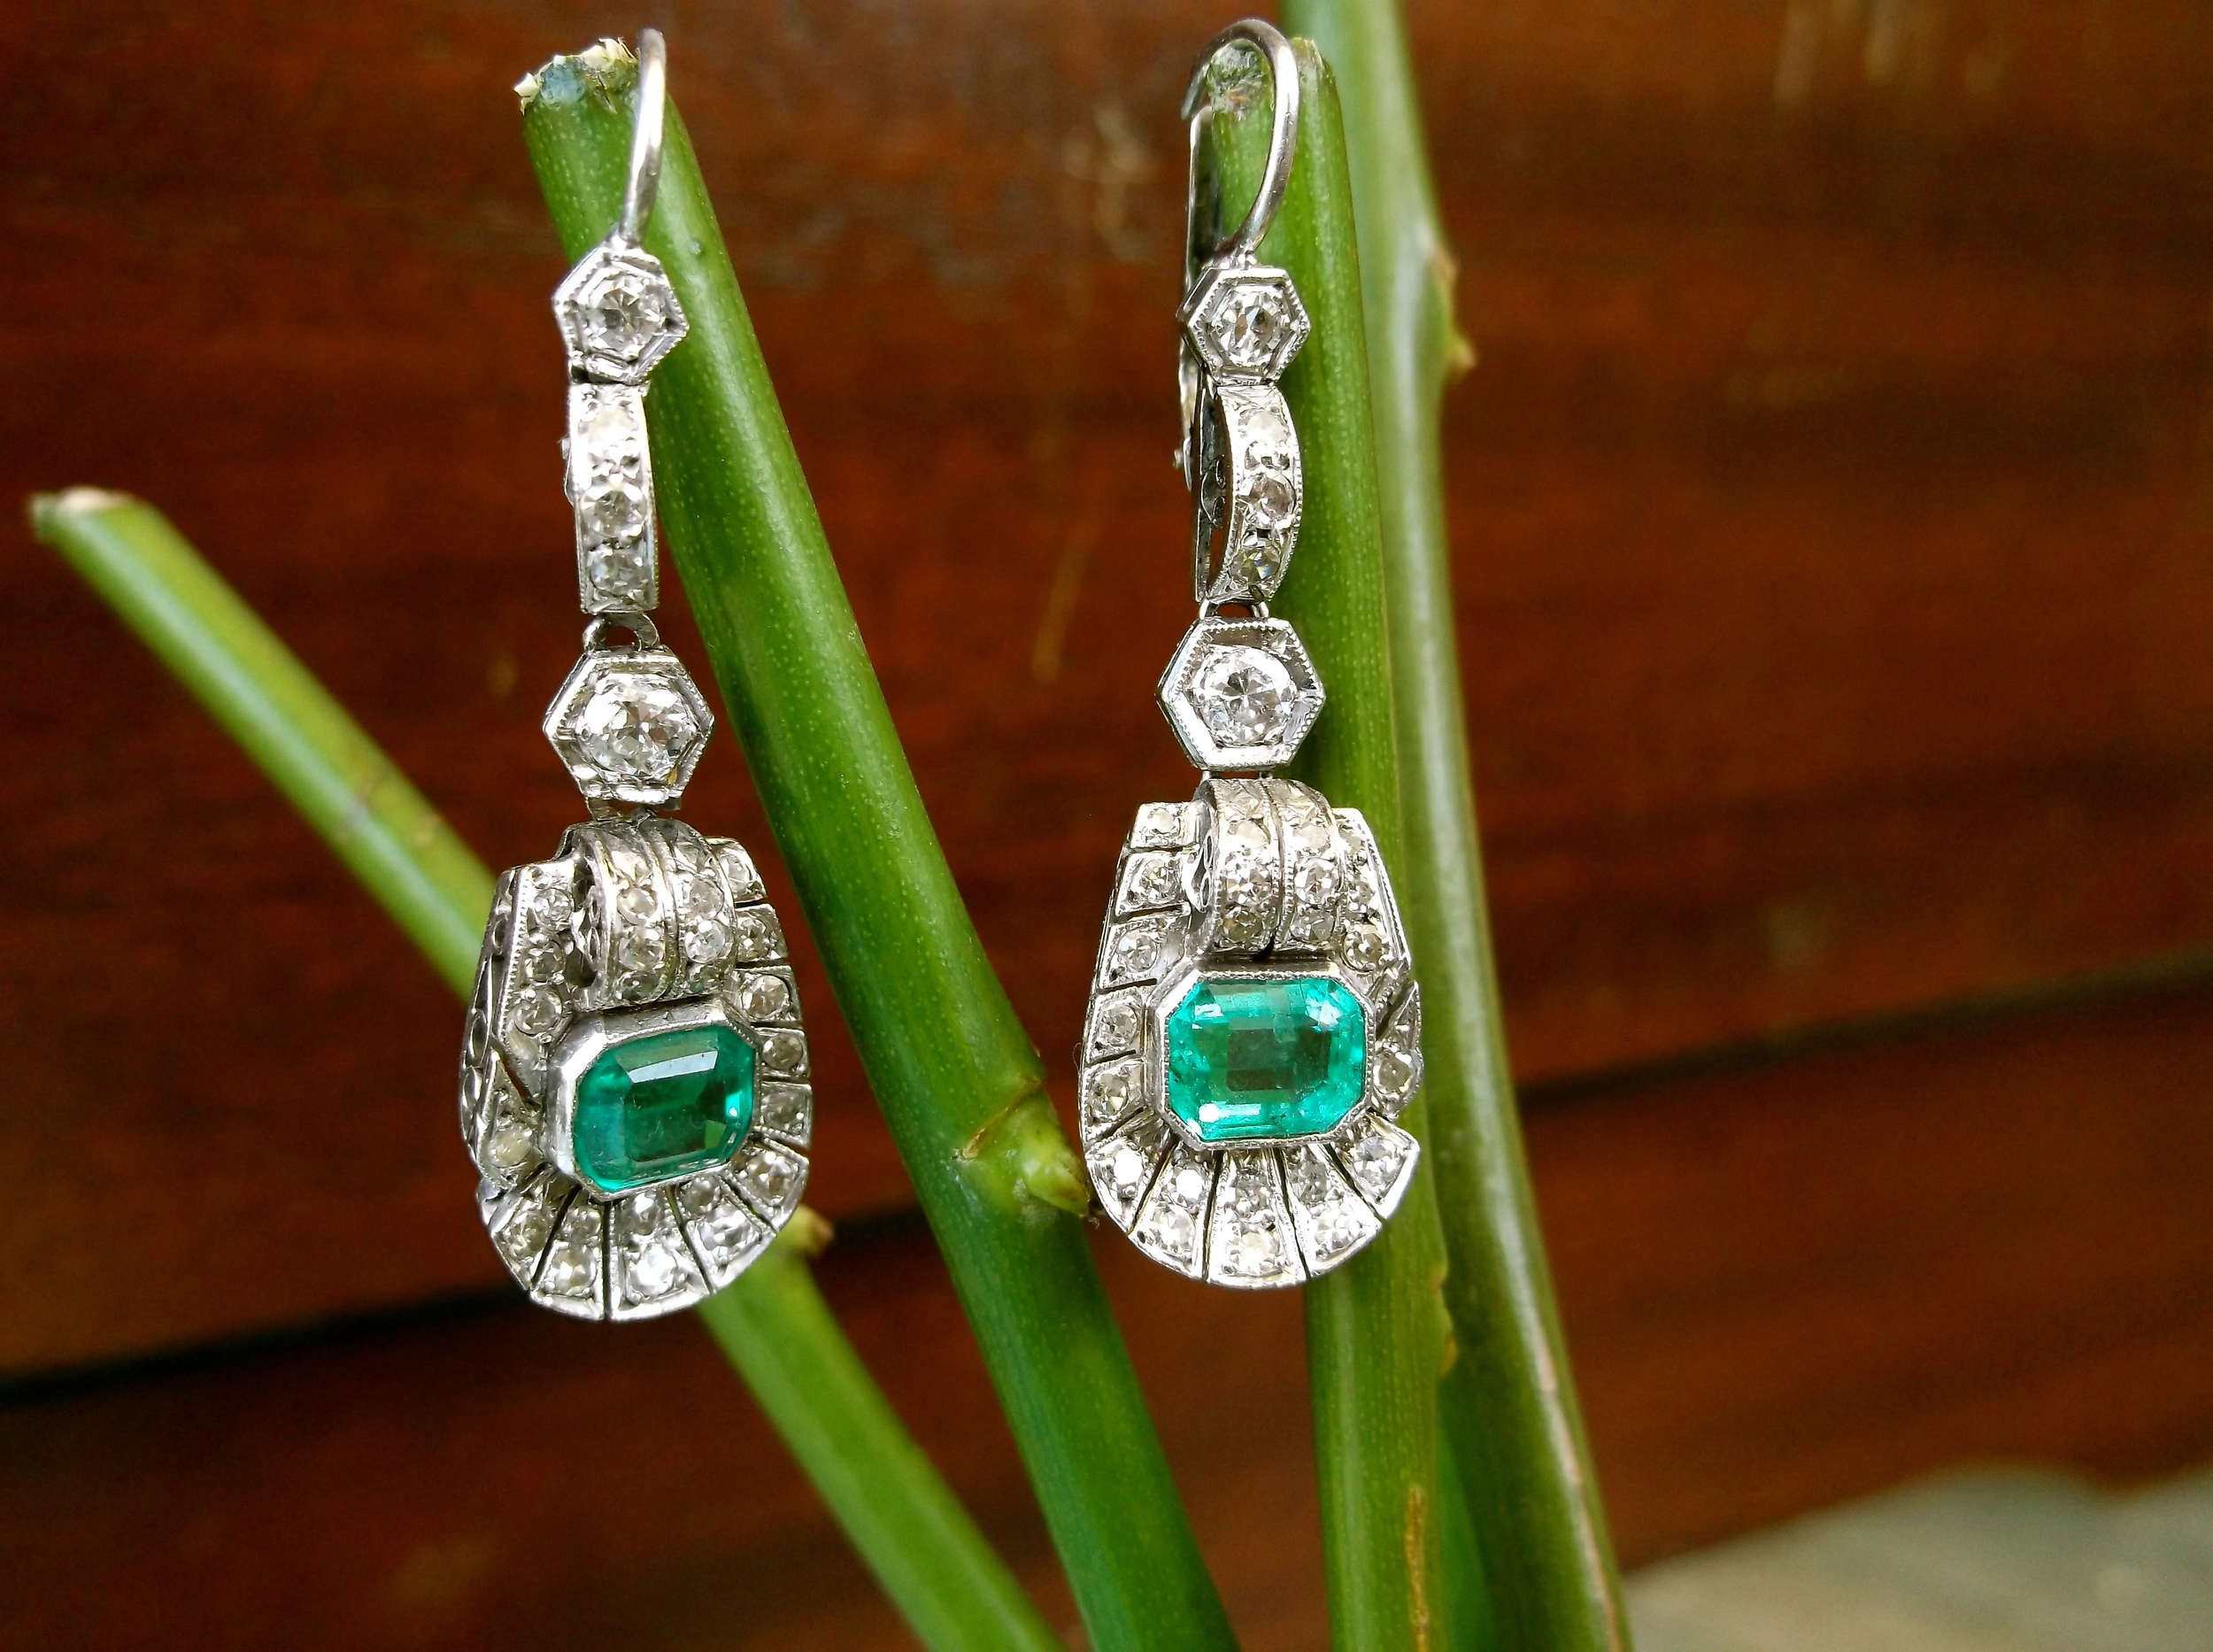 SOLD - An Argentinian find! Art Deco diamond (1.05 carats total weight) and emerald earrings (each emerald is 0.85 carats) set in platinum.